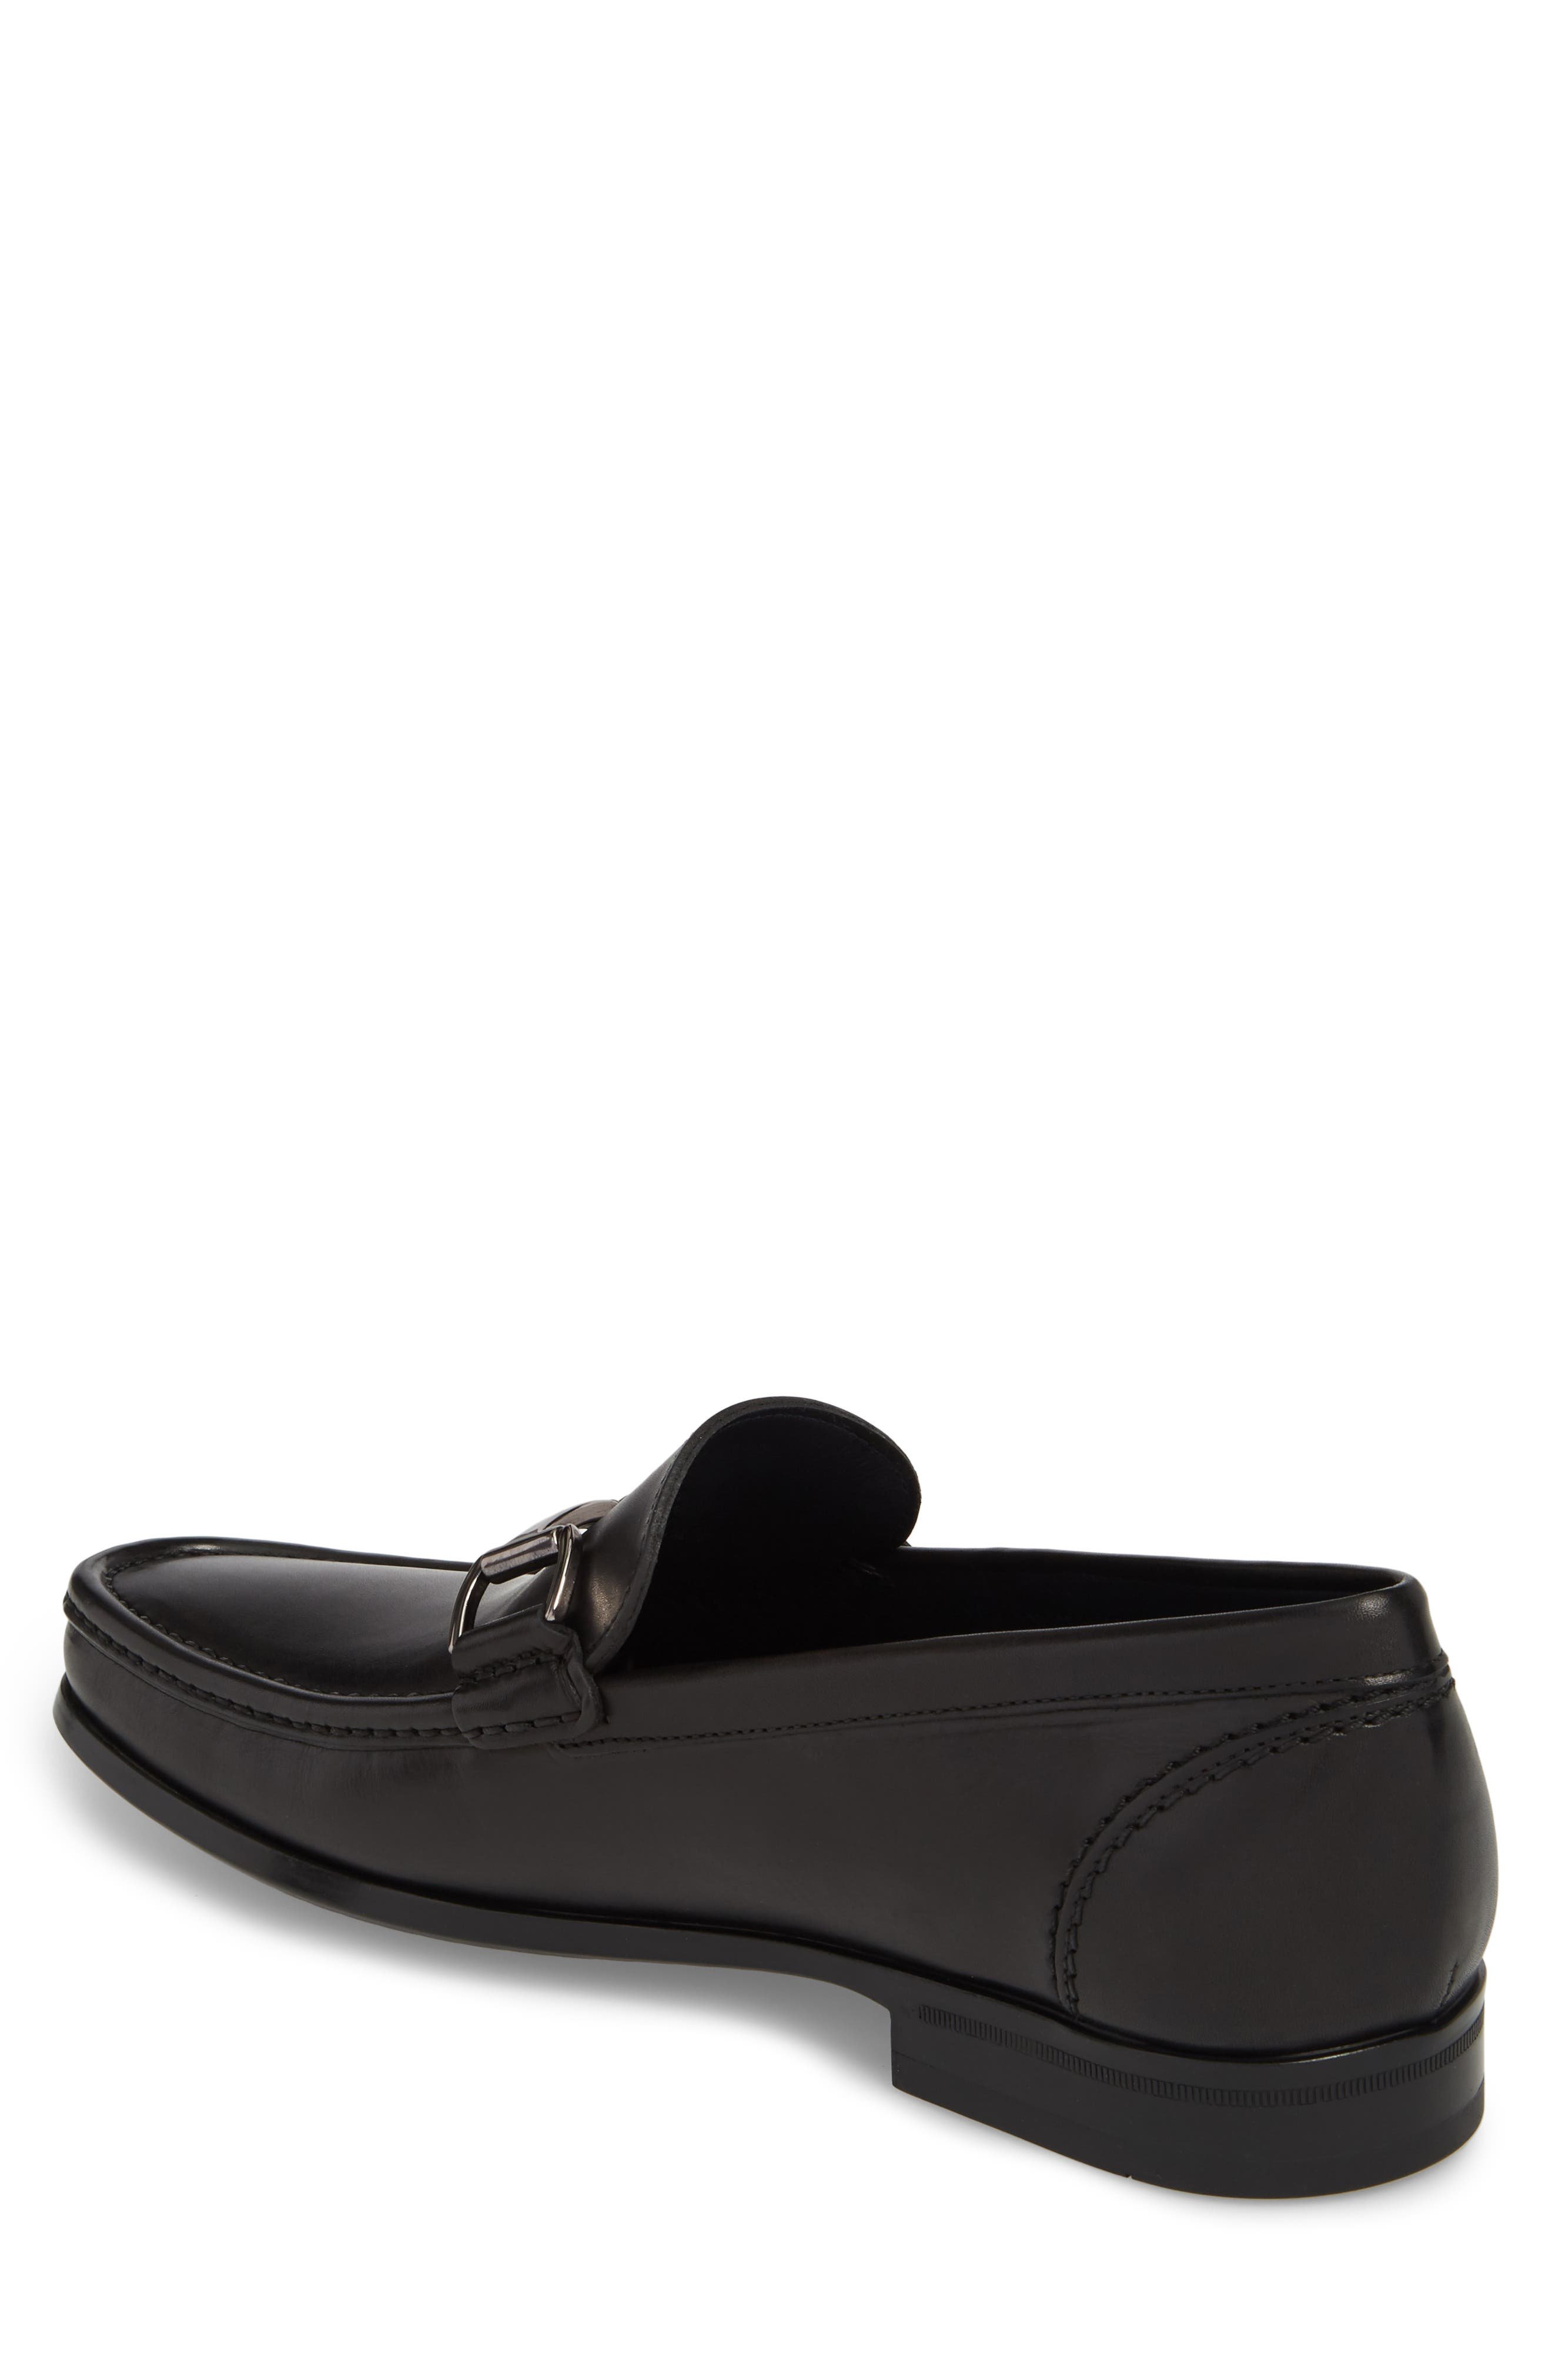 Gio Bit Loafer,                             Alternate thumbnail 2, color,                             001